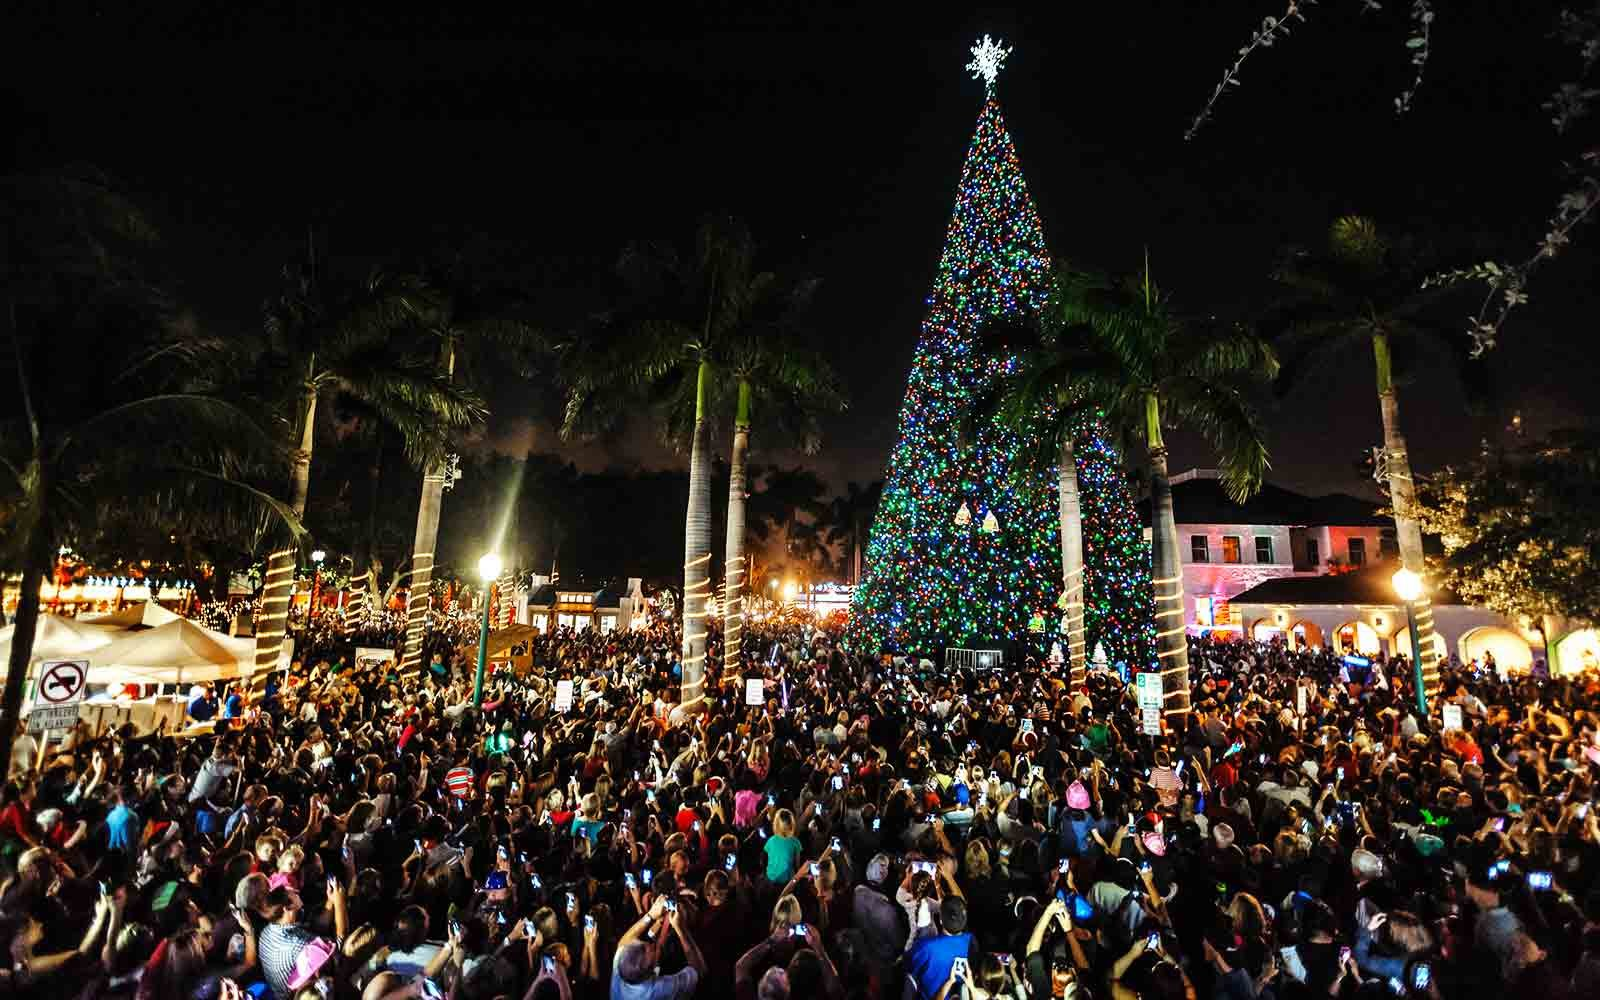 florida-delray-beach-XMASTREE1216.jpg